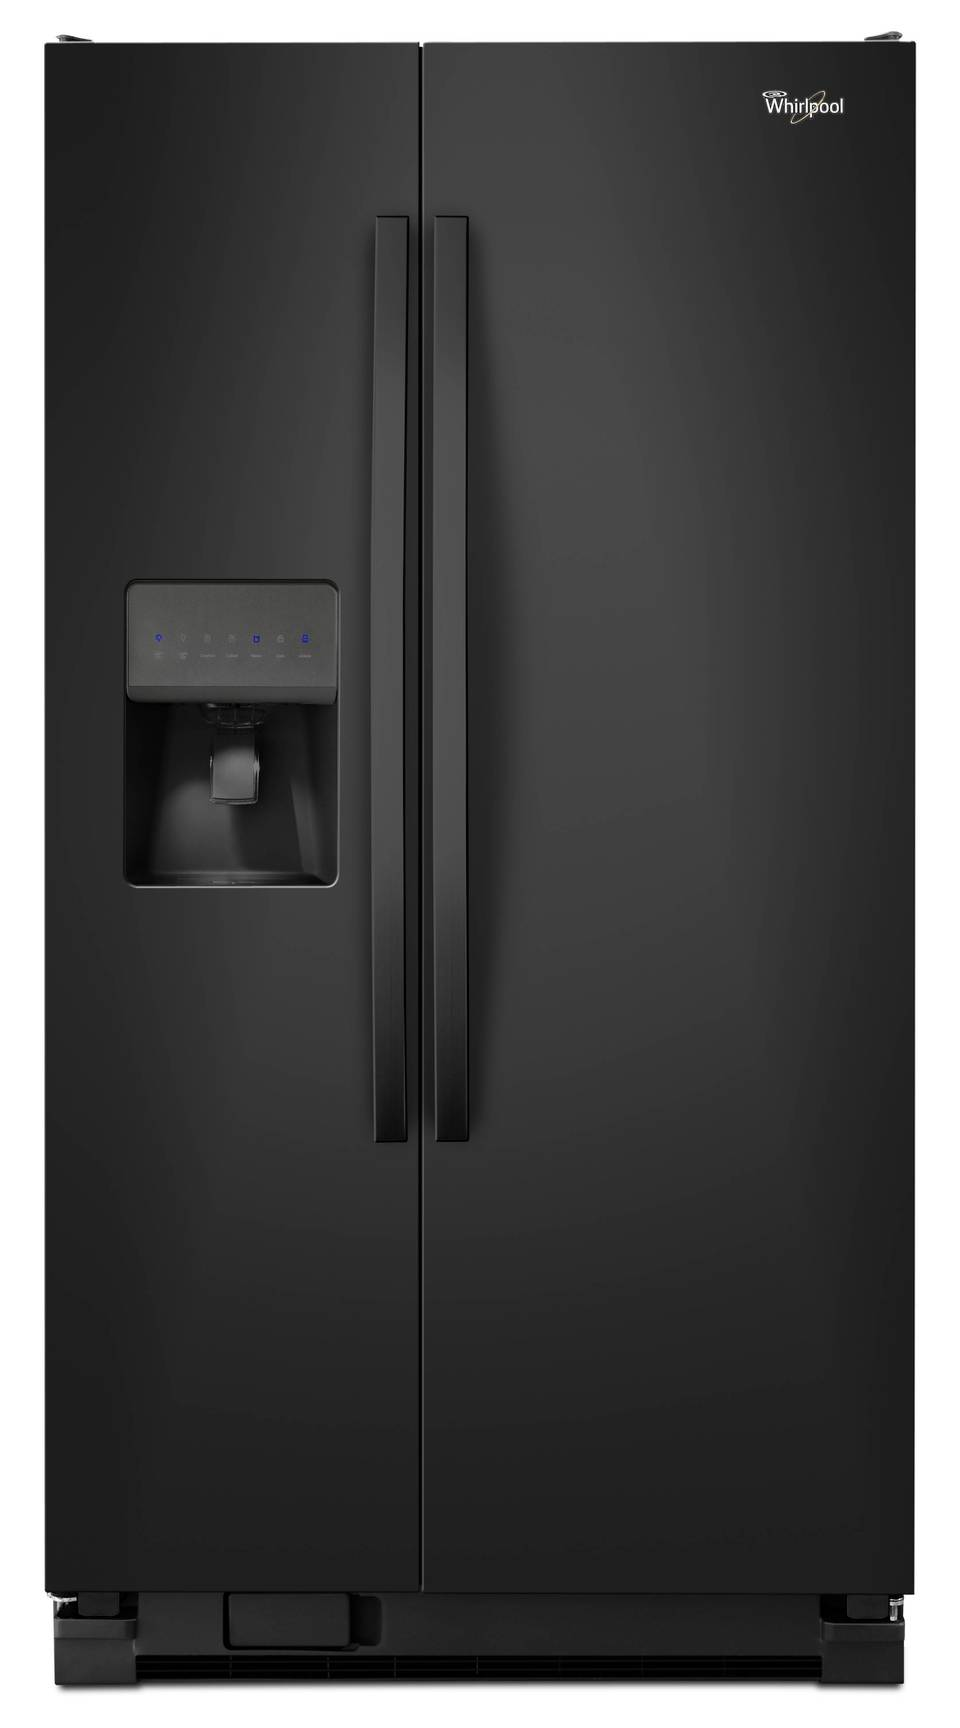 refrigerator black. whirlpool 24.5-cu ft side-by-side refrigerator with ice maker (black black o